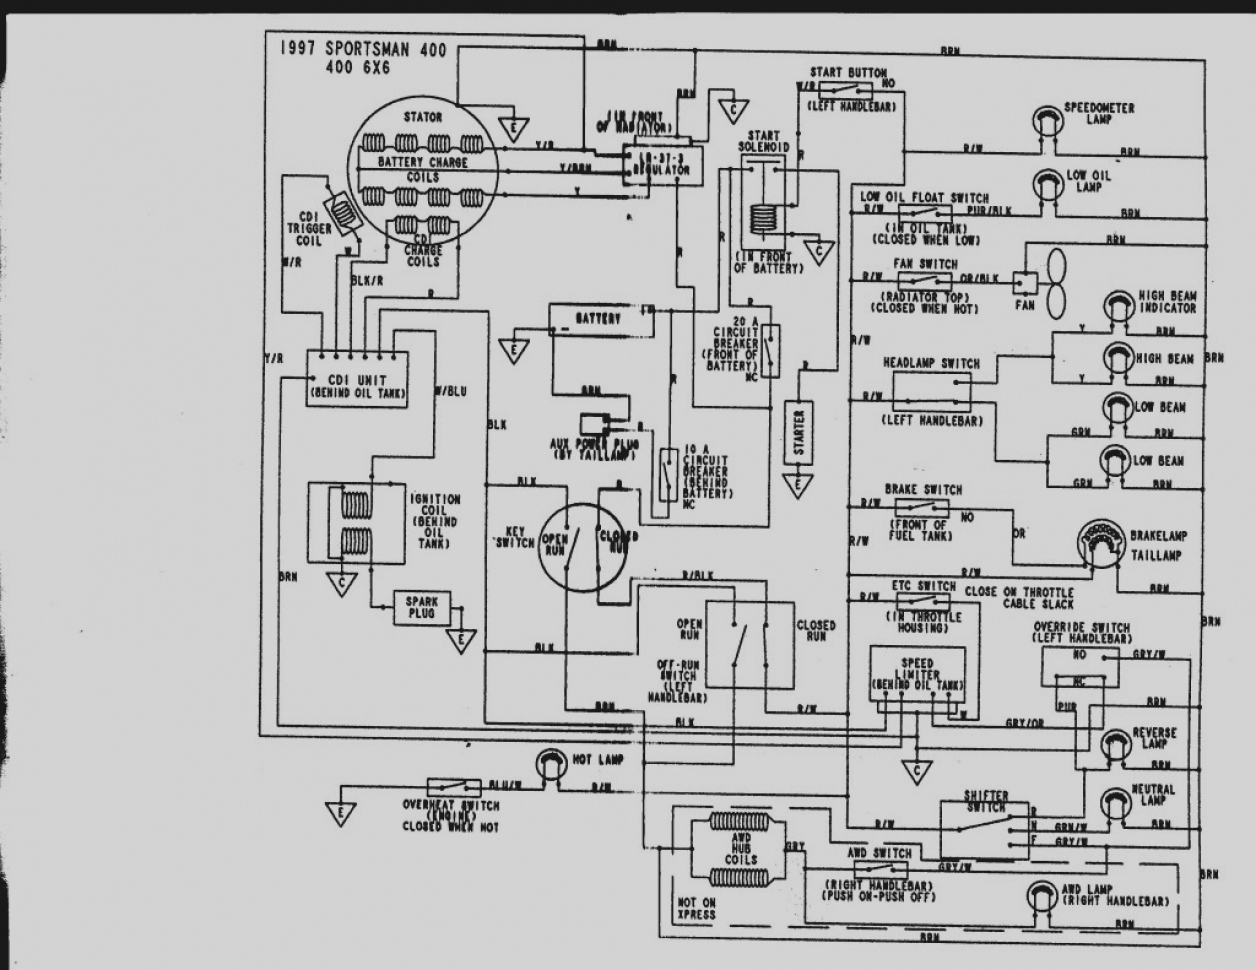 polaris ranger electrical schematic wiring diagram for polaris ranger 700 efi #7